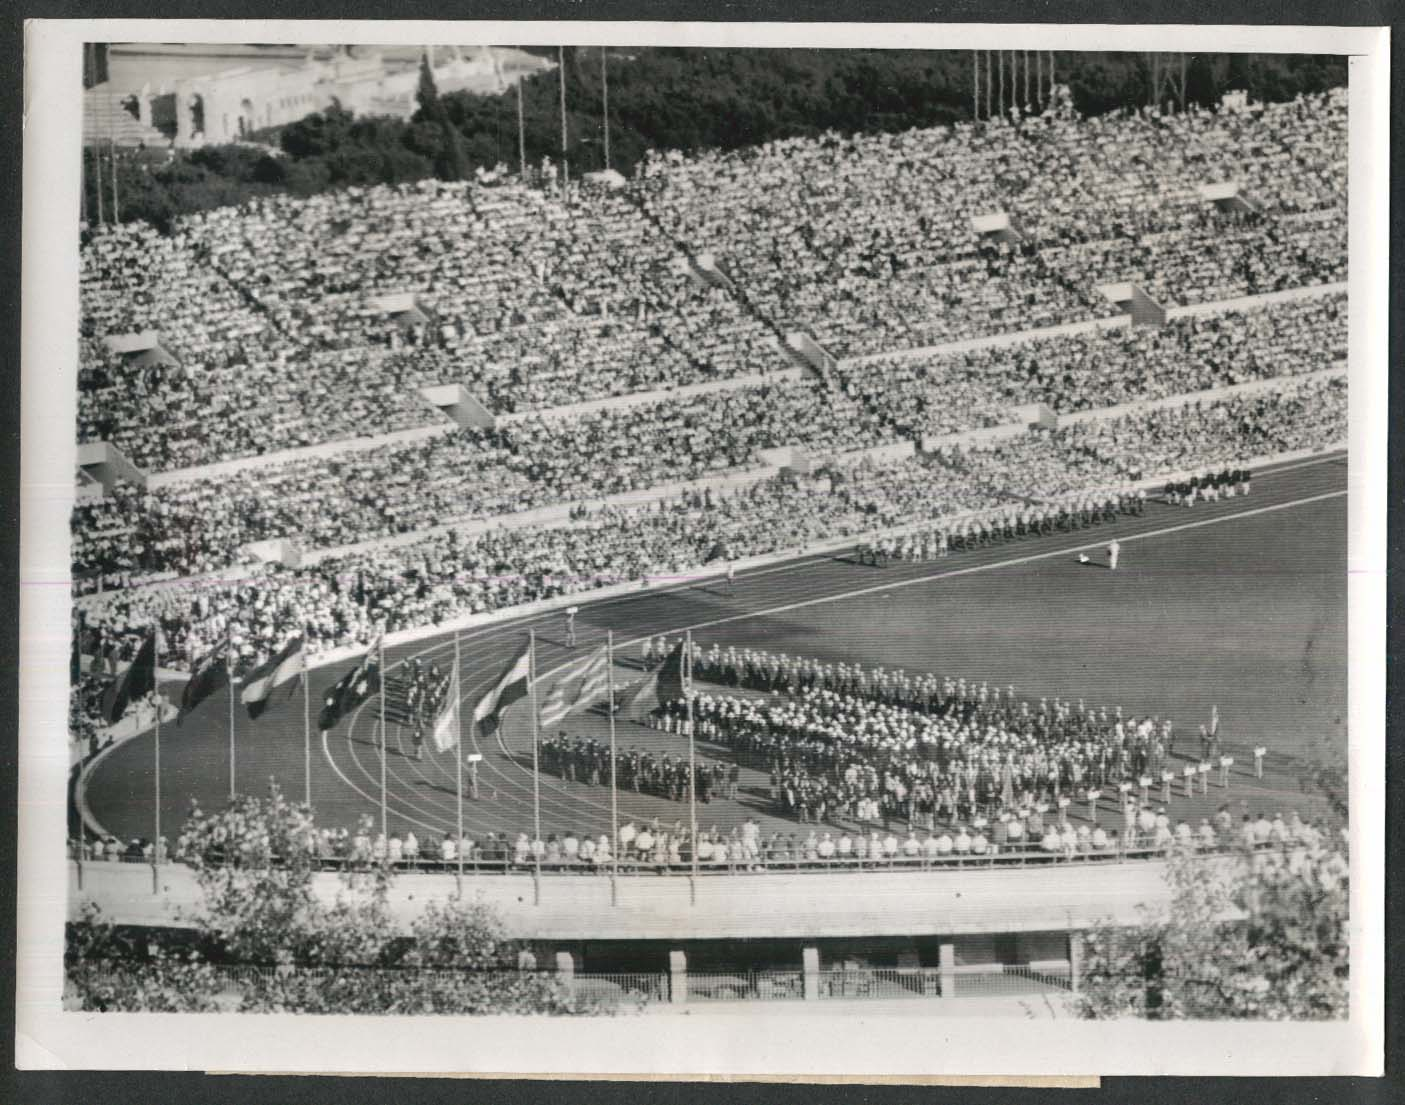 1960 Olympics Opening Parade 7x9 news photo